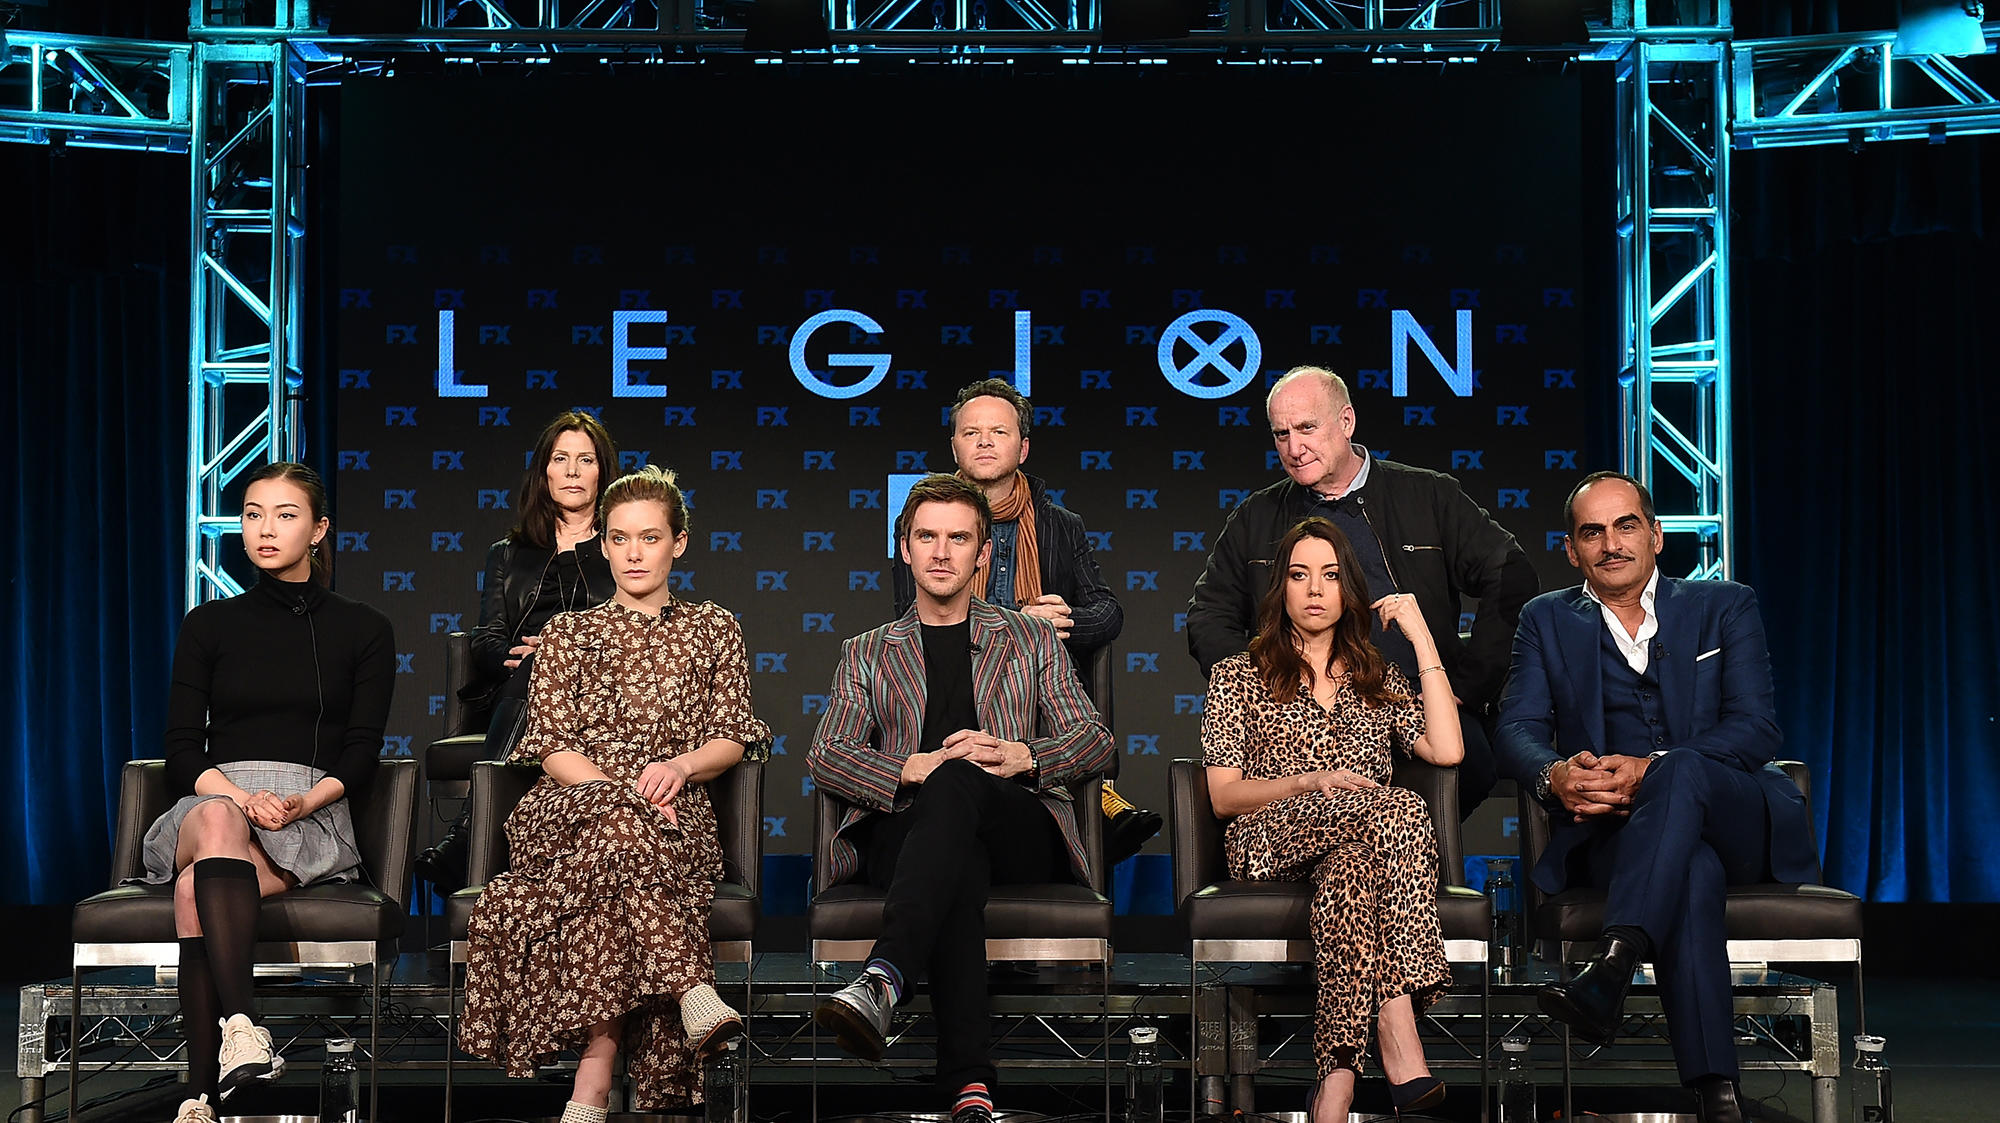 """Legion"" Executive Producers and cast members at the 2019 TCA winter press tour"